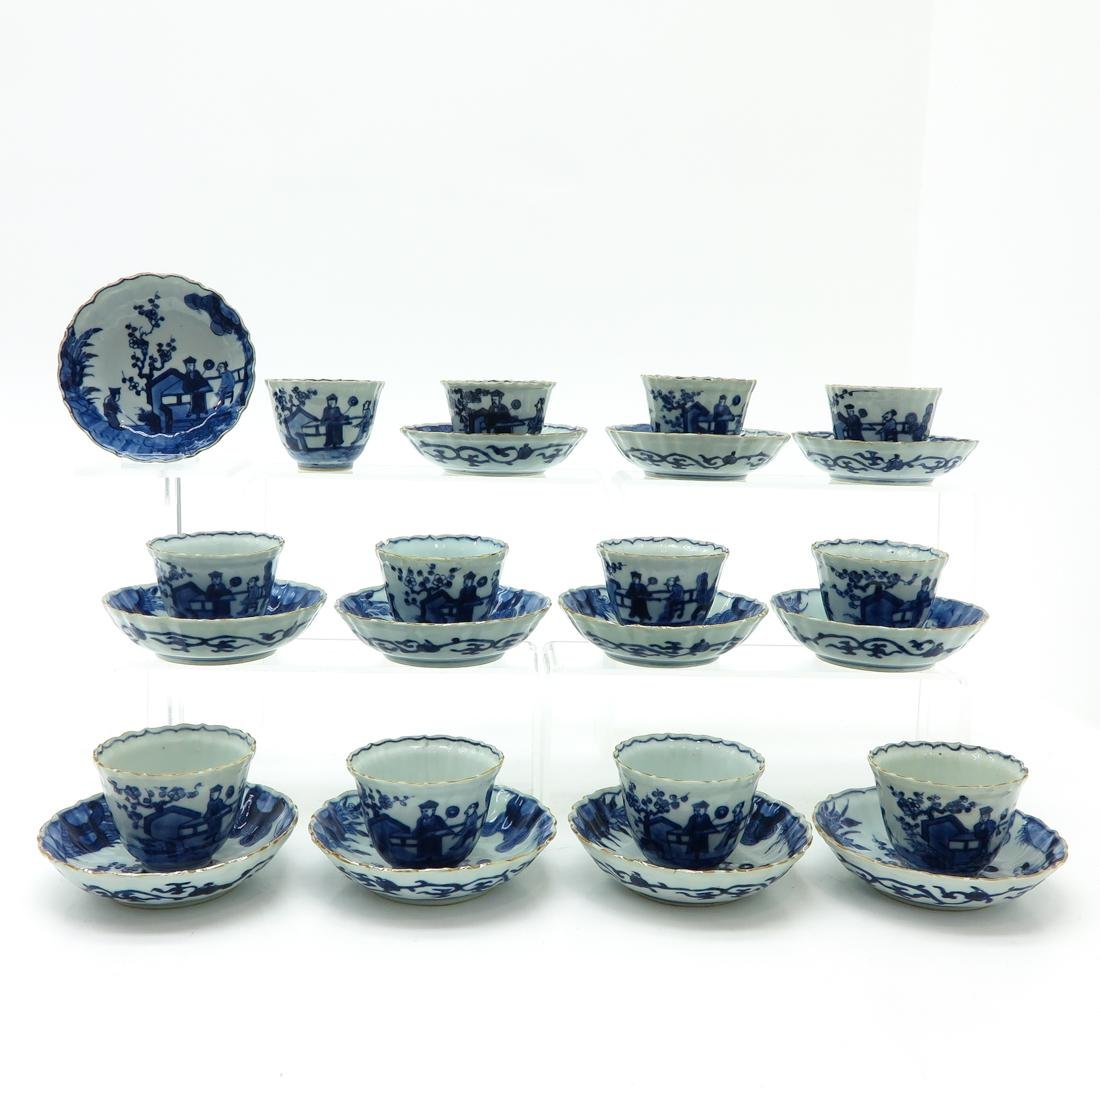 Lot of 12 Cups and Saucers